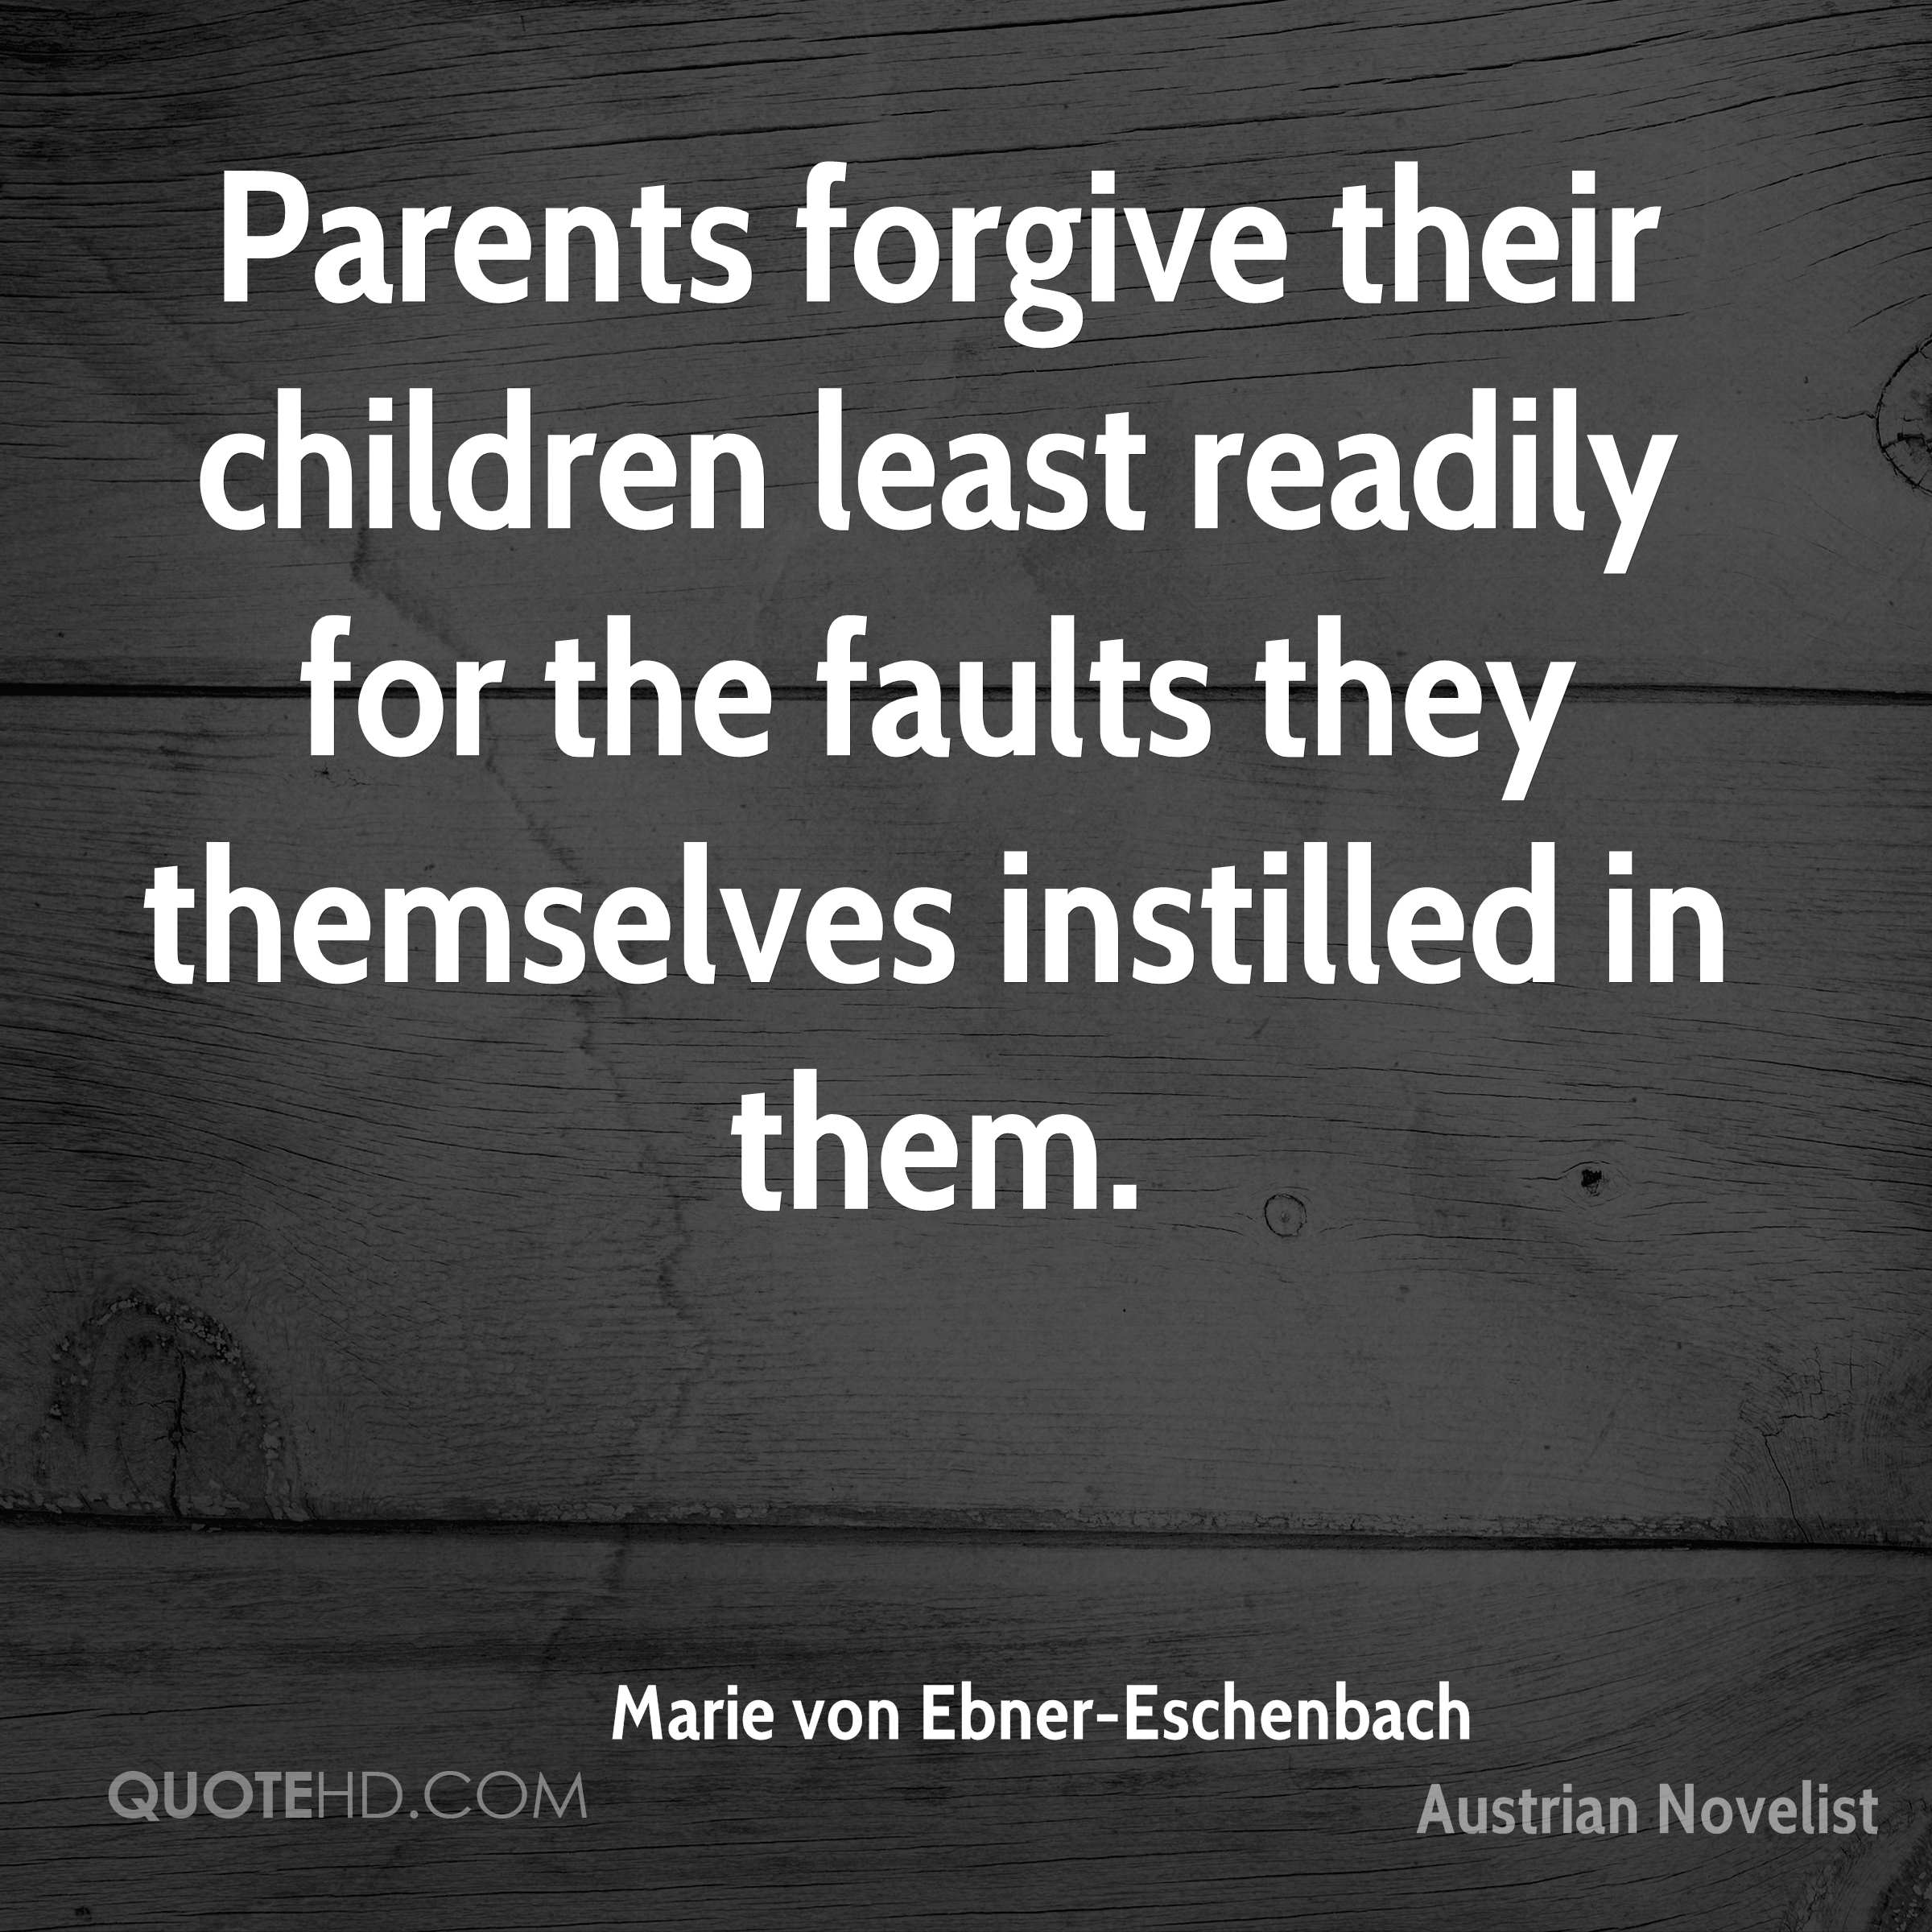 Parents forgive their children least readily for the faults they themselves instilled in them.